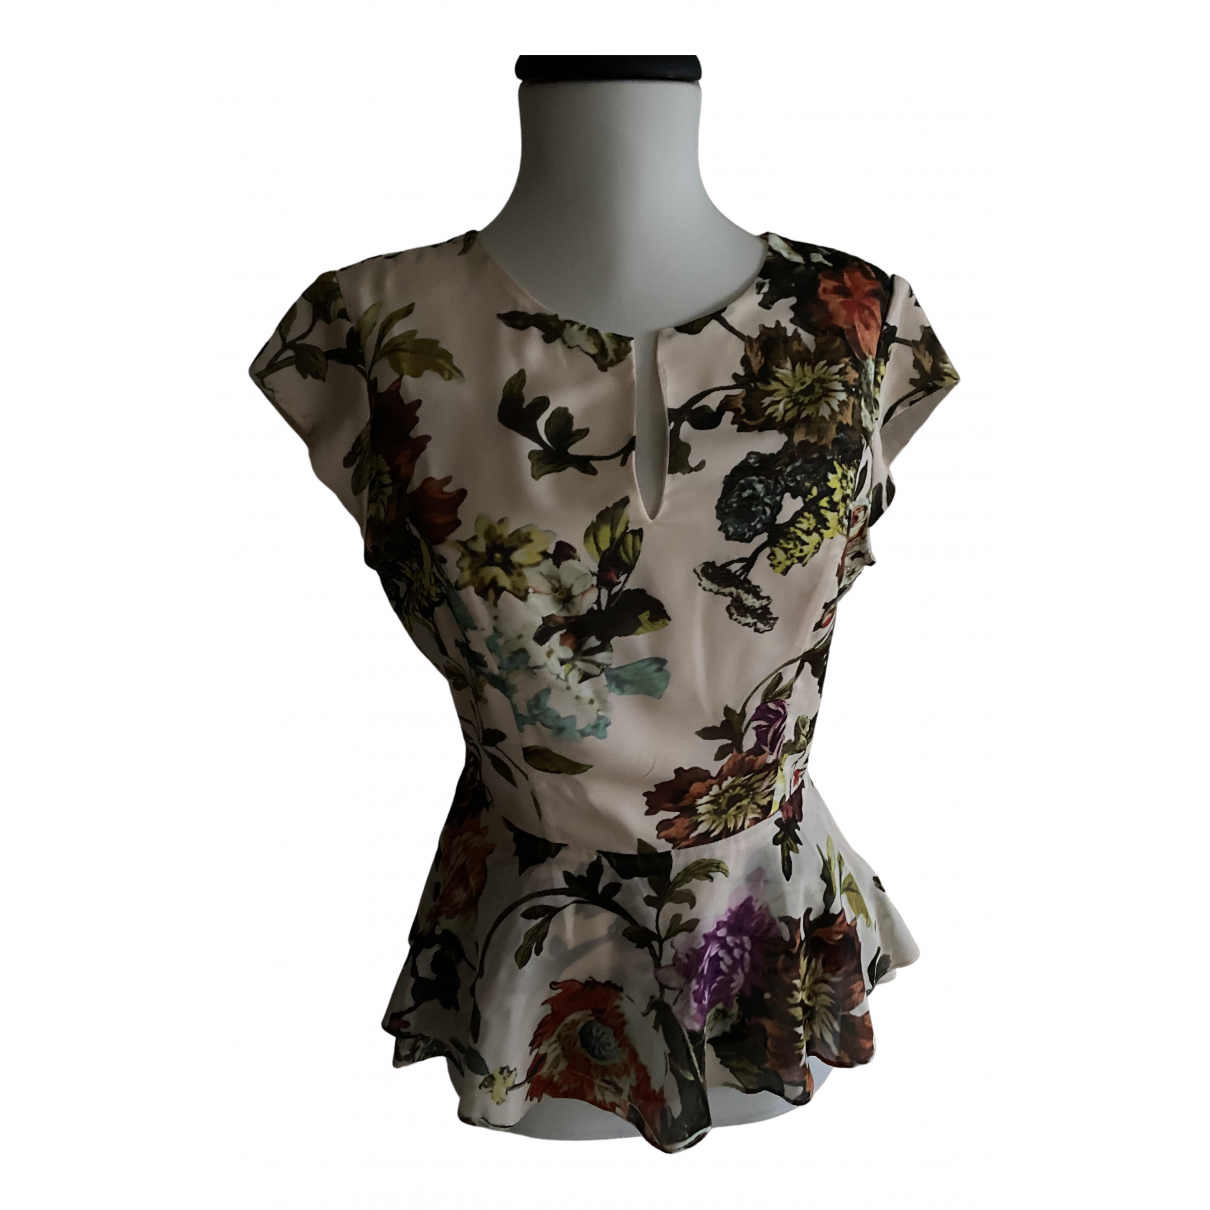 Ted Baker \N Ecru  top for Women 8 UK